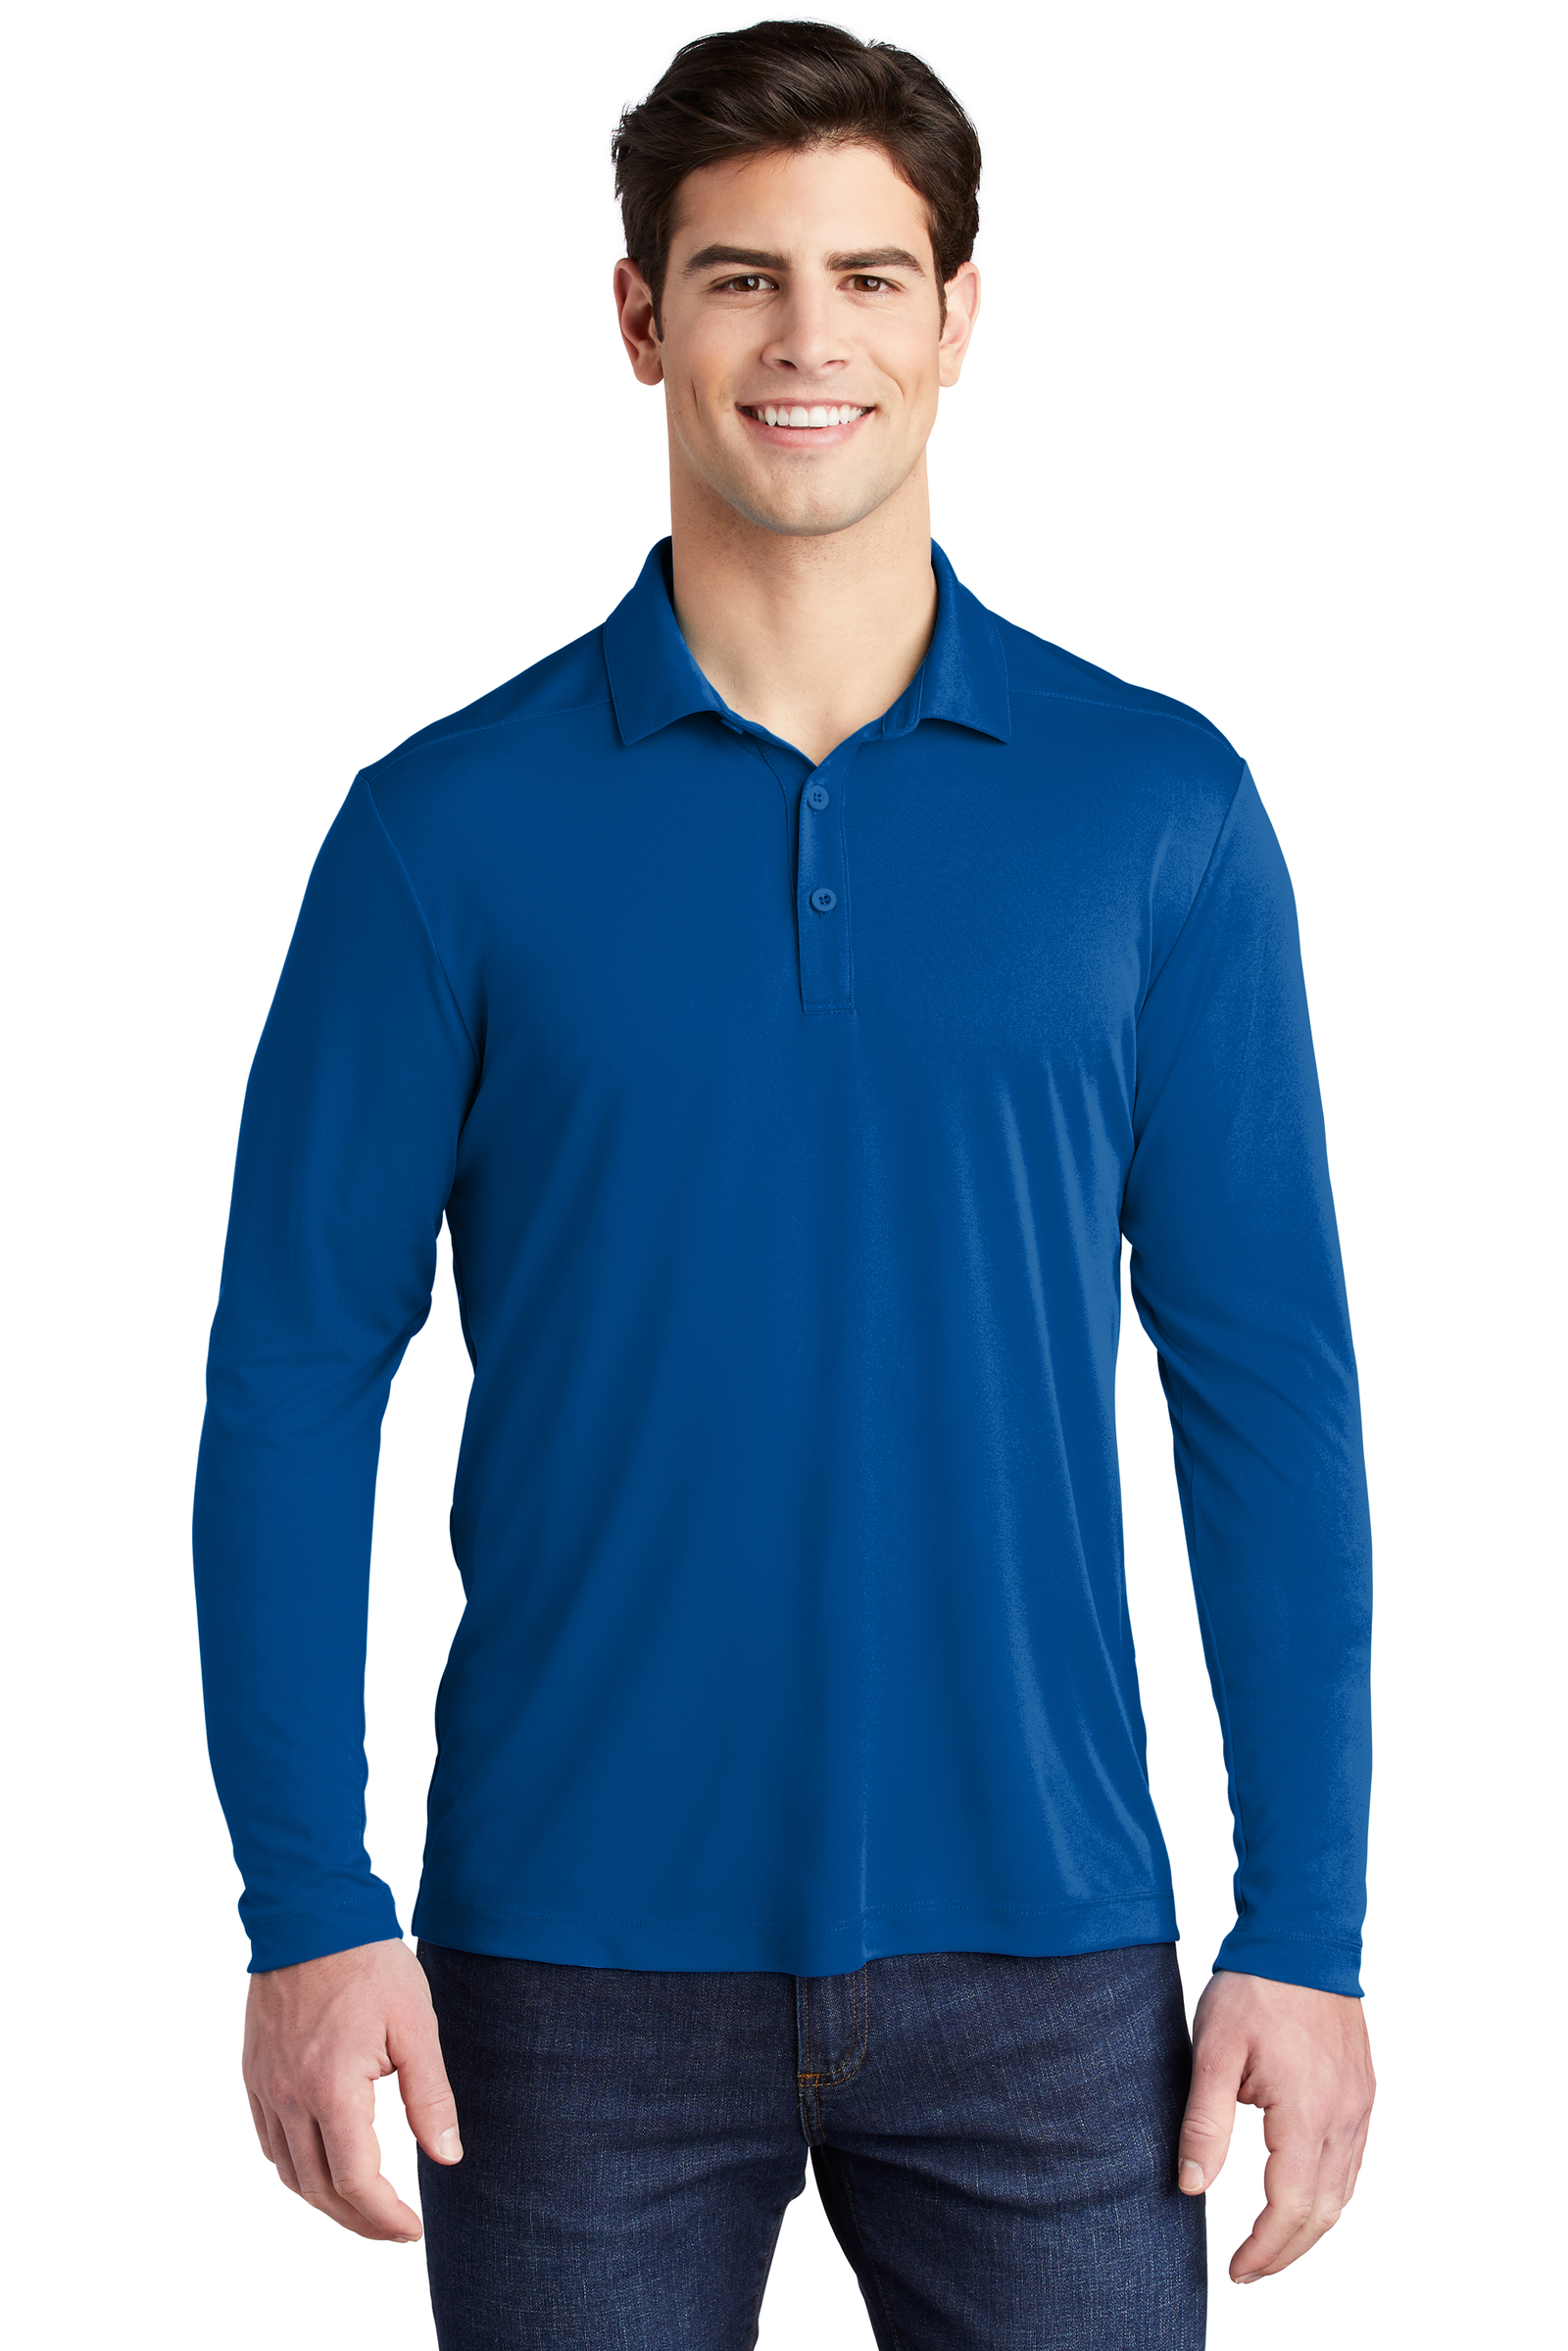 Sport-Tek Embroidered Men's Posi-UV Pro Long Sleeve Polo